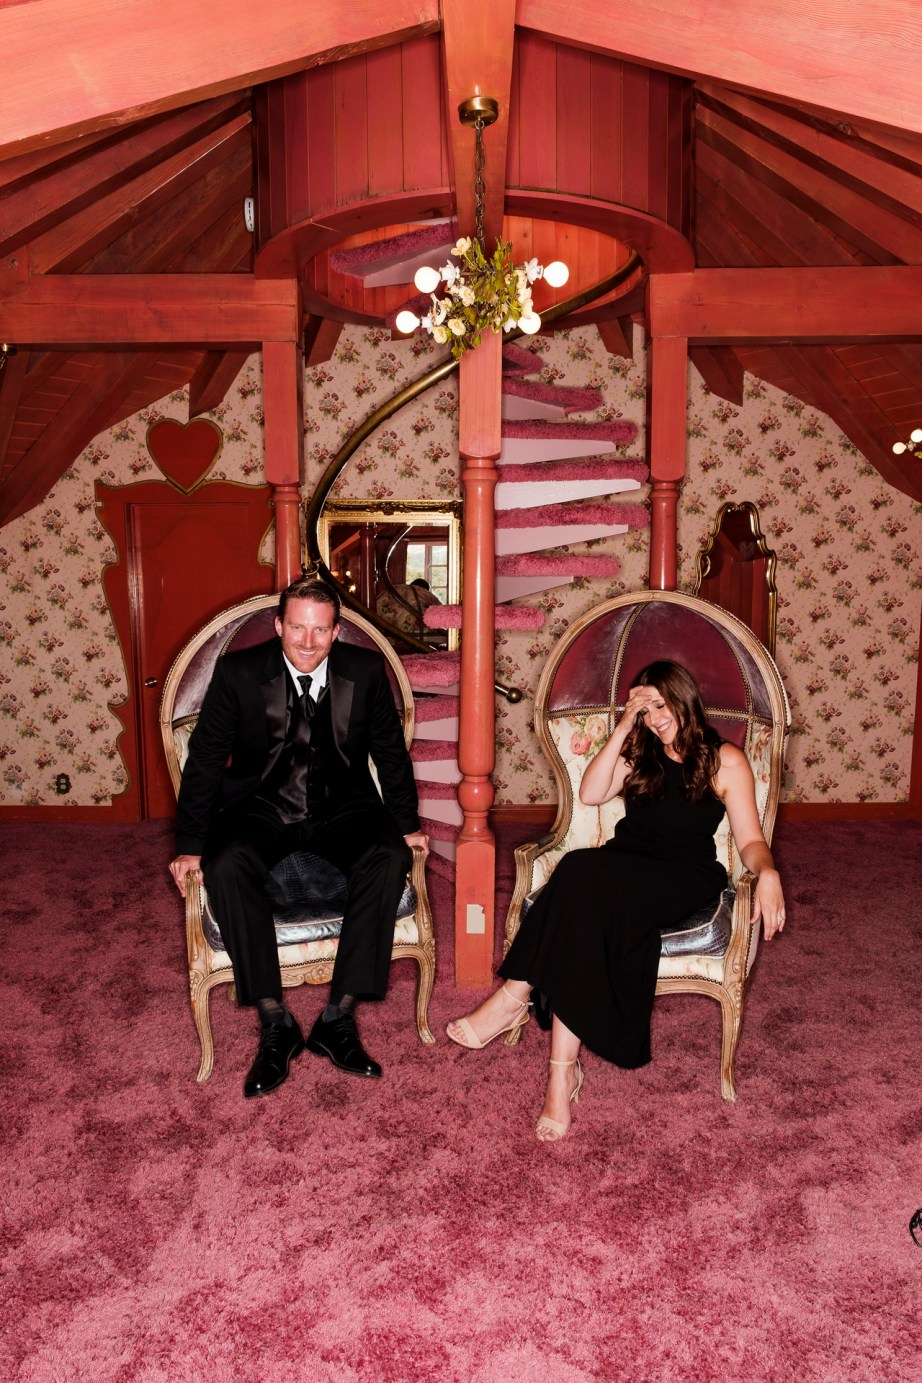 madonna_inn_engagement_photos_Nicole_caldwell_photo_09